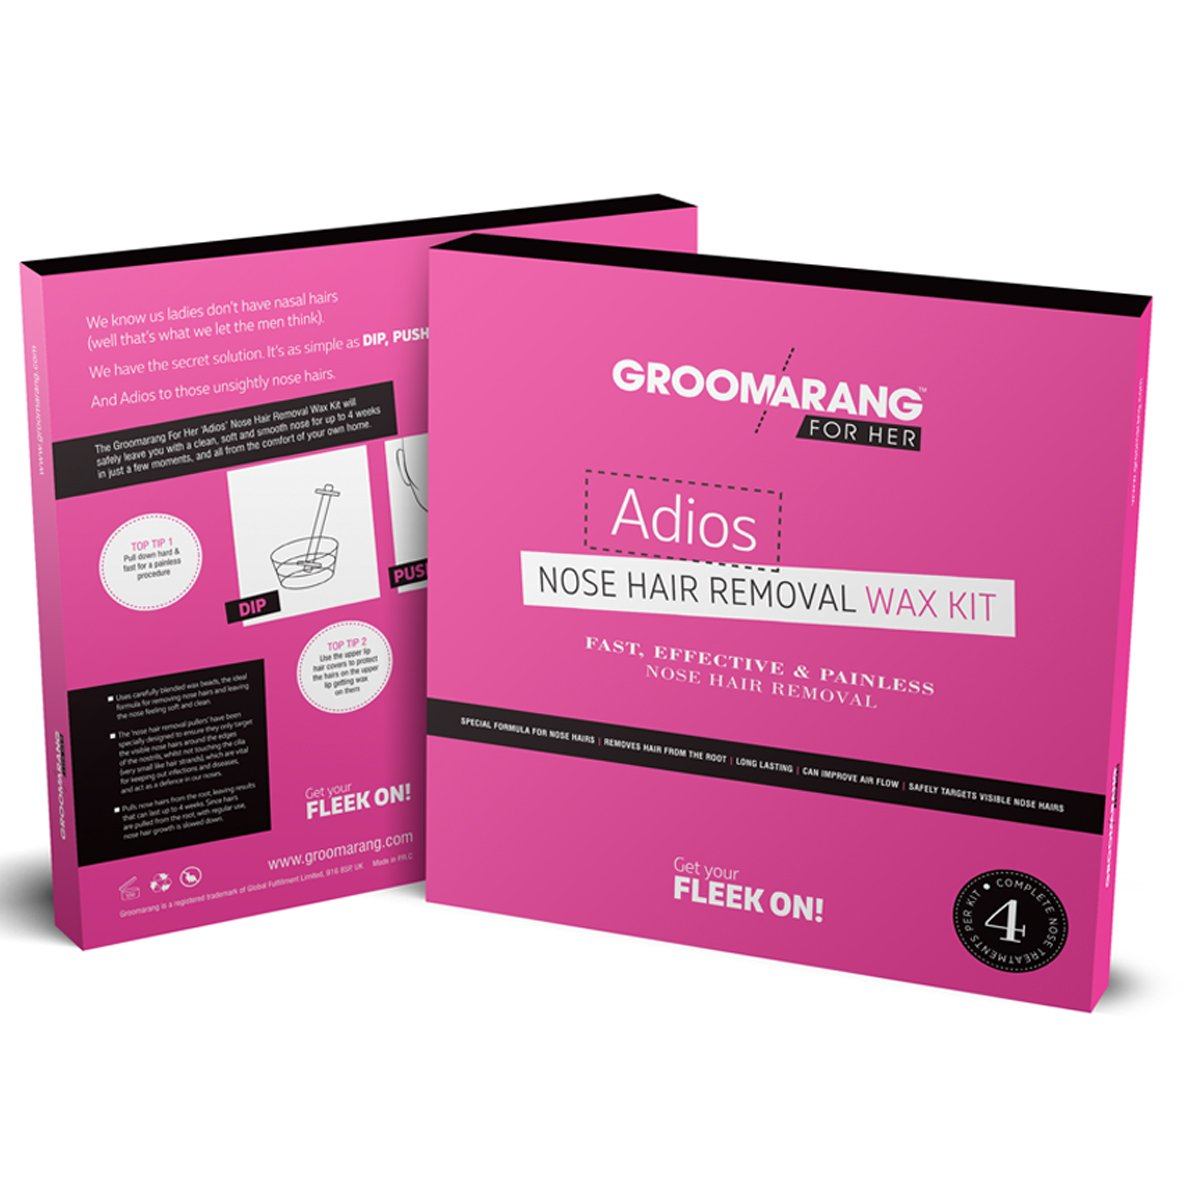 Groomarang For Her- Adios Nose Hair Removal Wax Kit For Her, Hair Removal by My Wholesale Warehouse